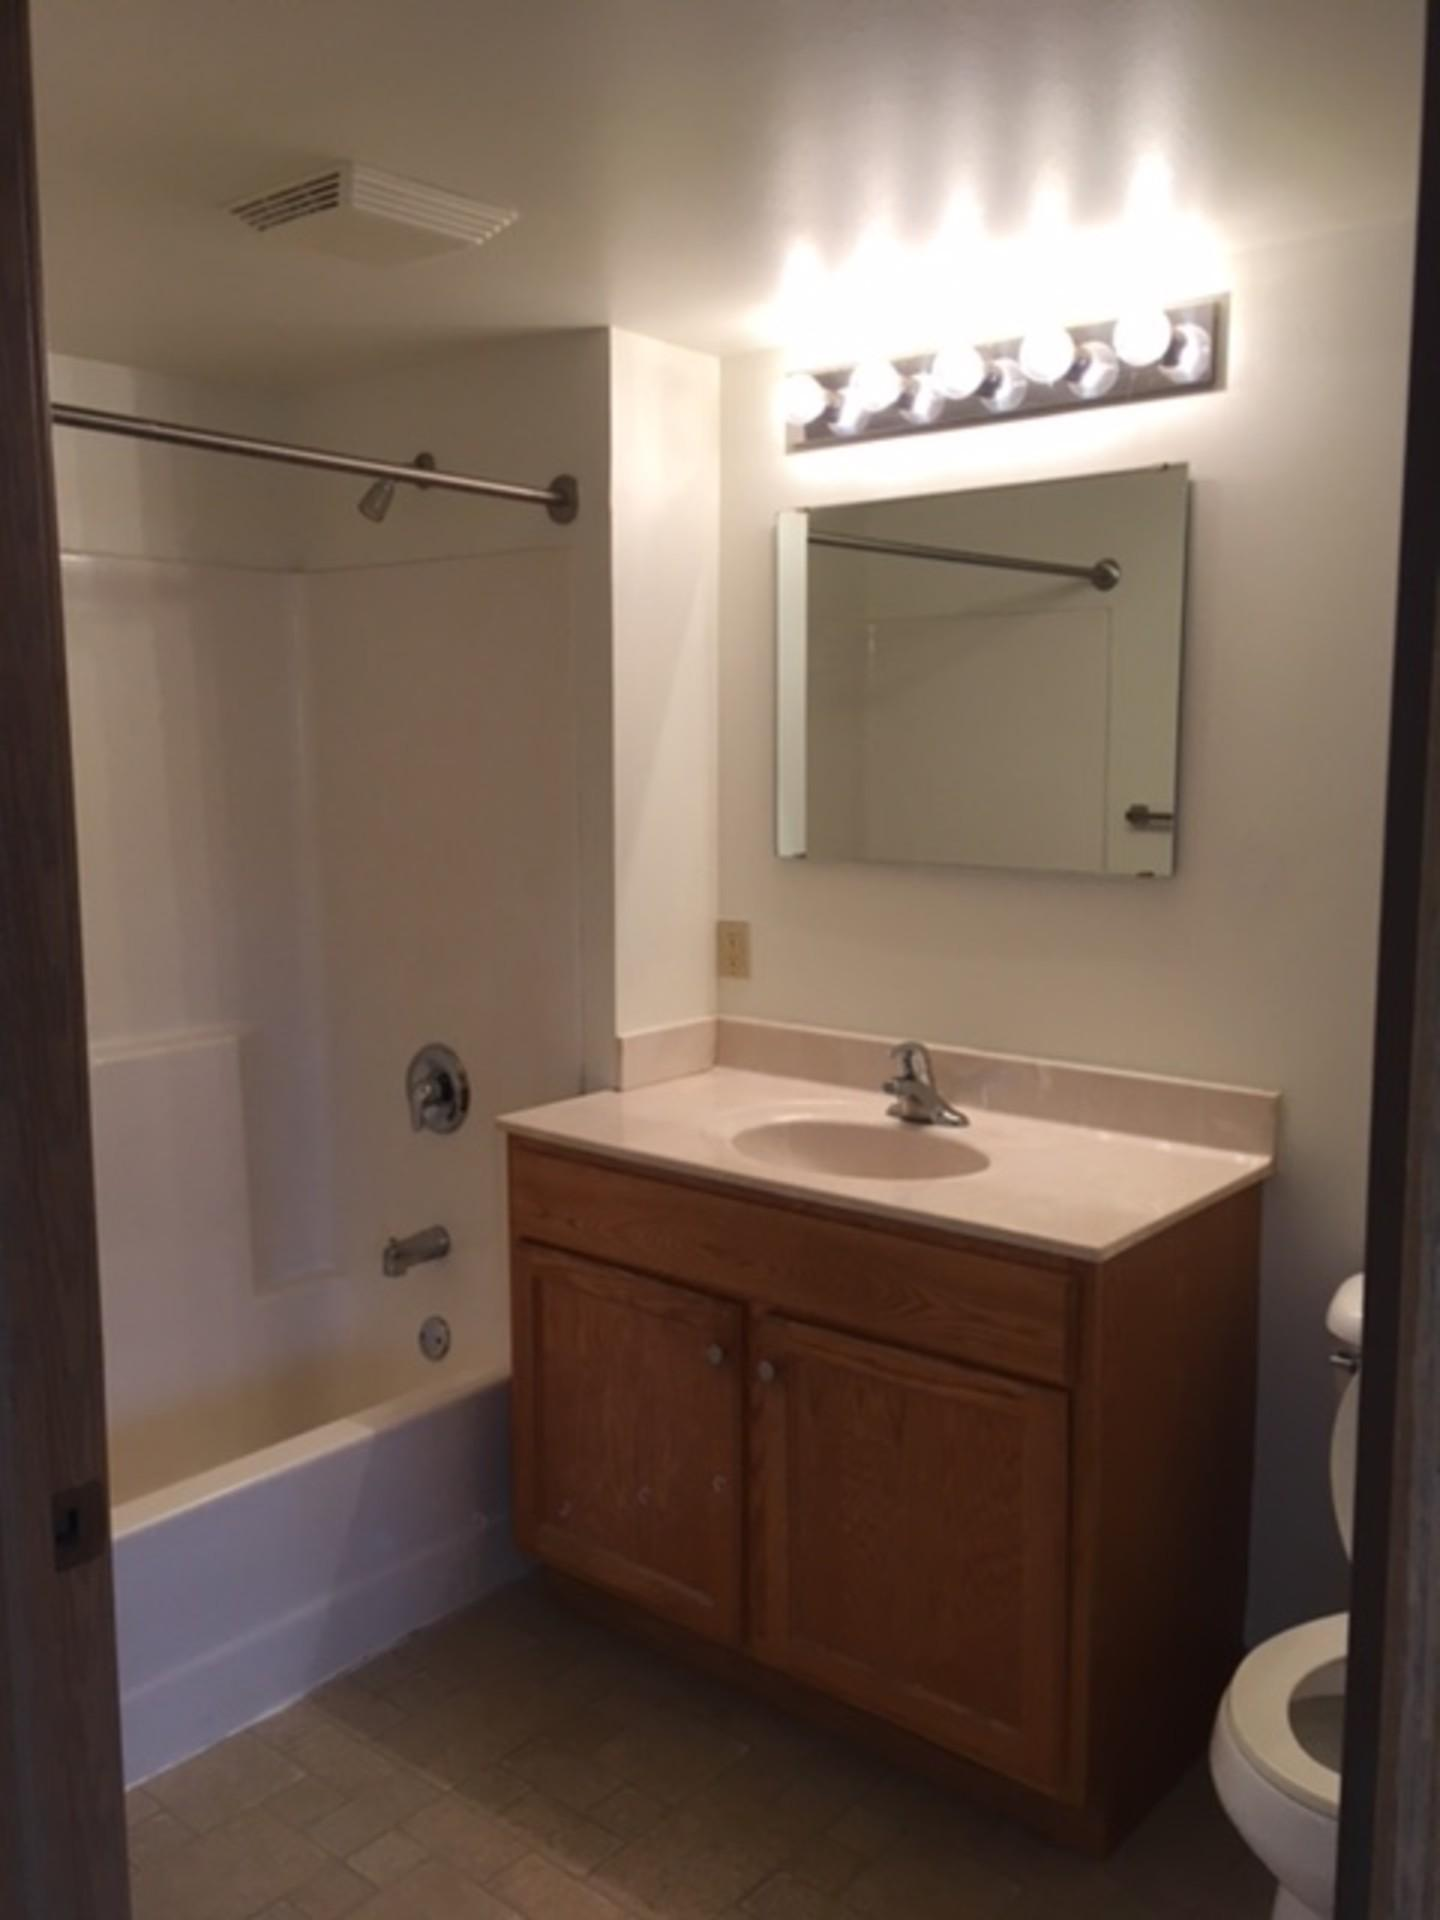 Great Modern Apartment! Excellent Value. (MKE) $725 1bd 775ft 2